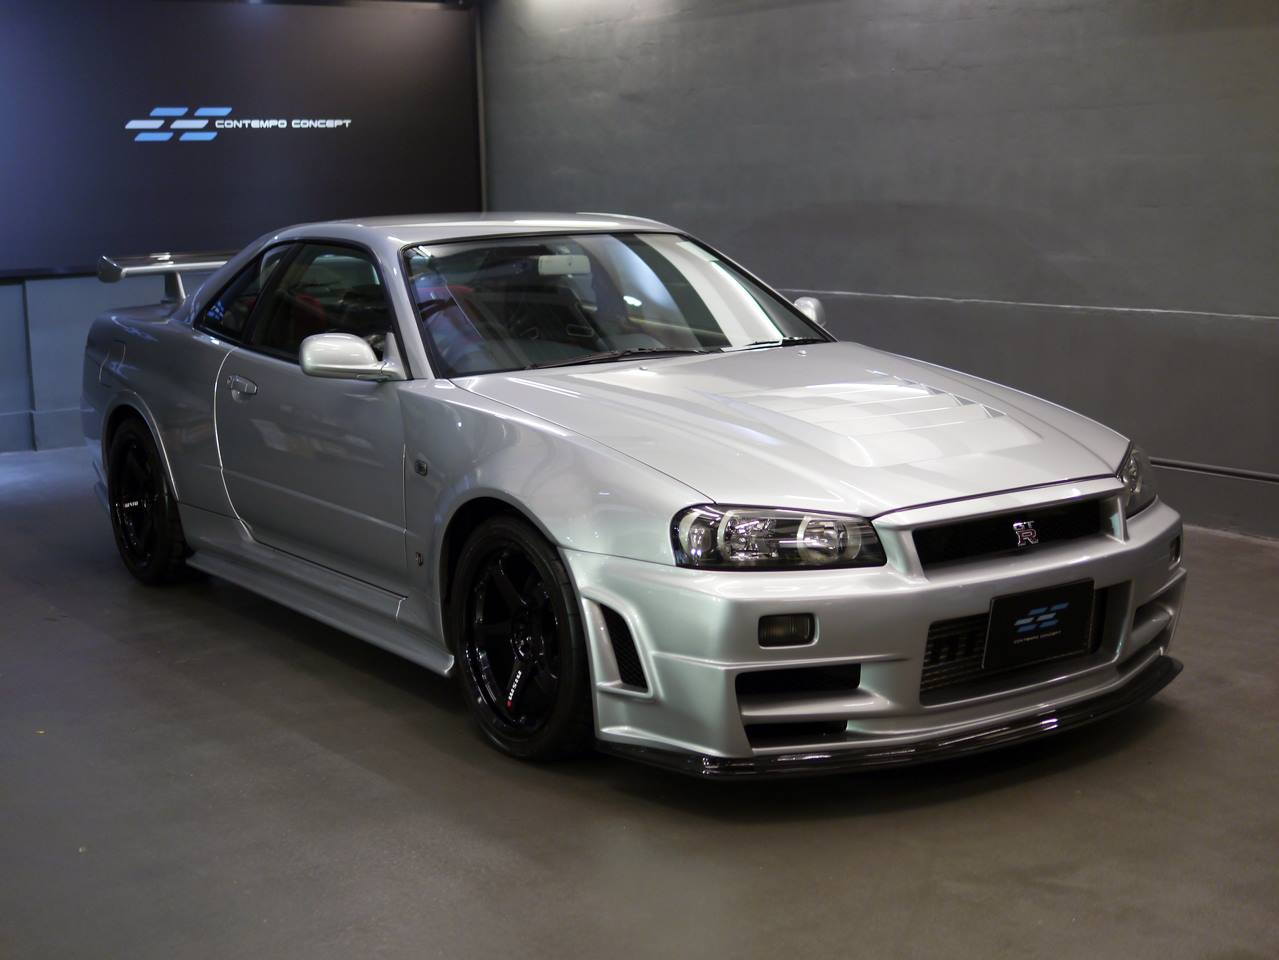 Nismo Nissan GT-R R34 Z -Tune for sale (1)